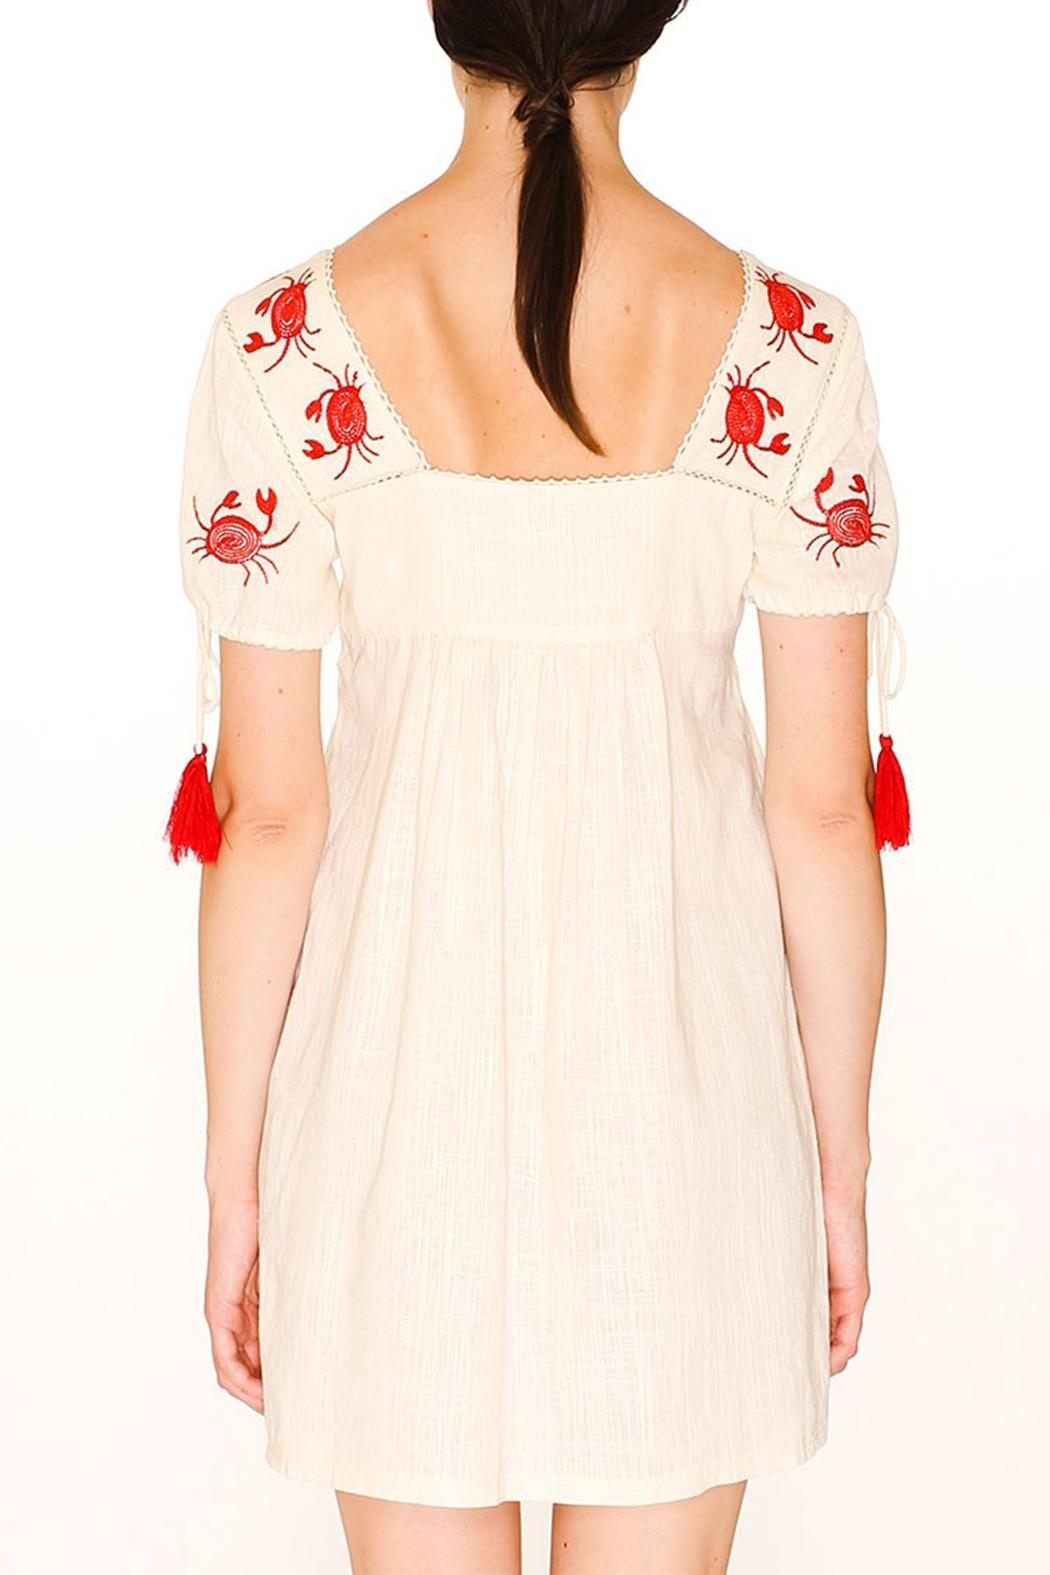 PepaLoves Crab Embroidered Dress - Front Full Image